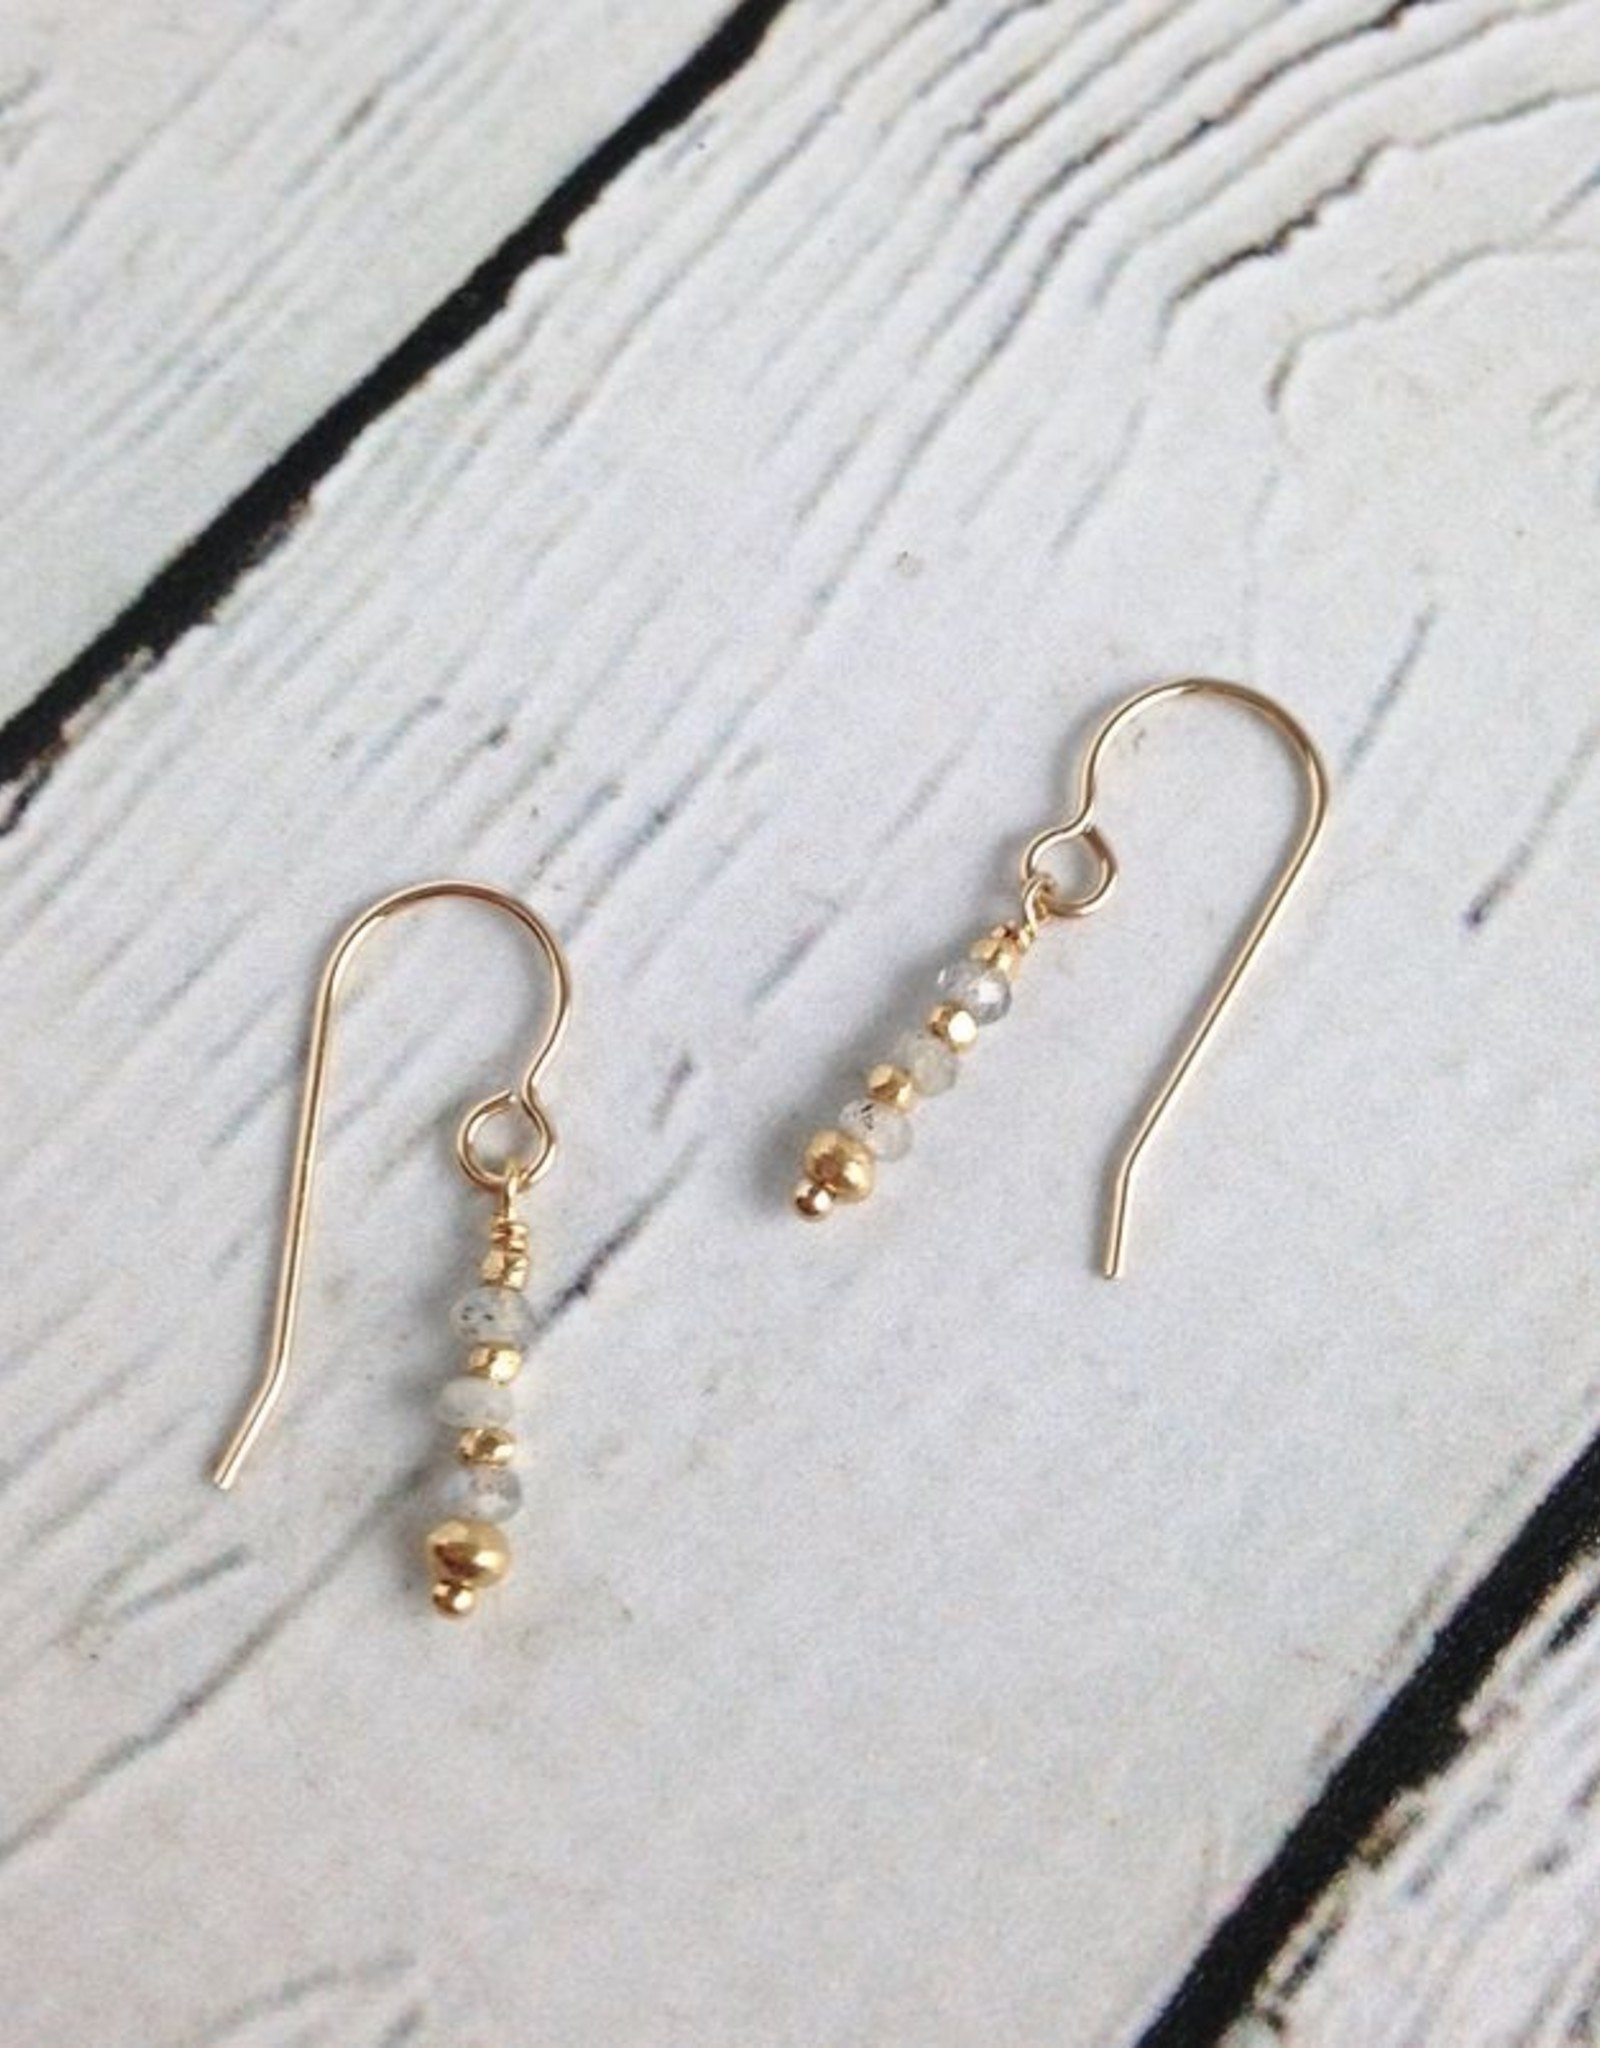 Handmade 4mm Faceted Labradorite and Gold Vermeil Earrings